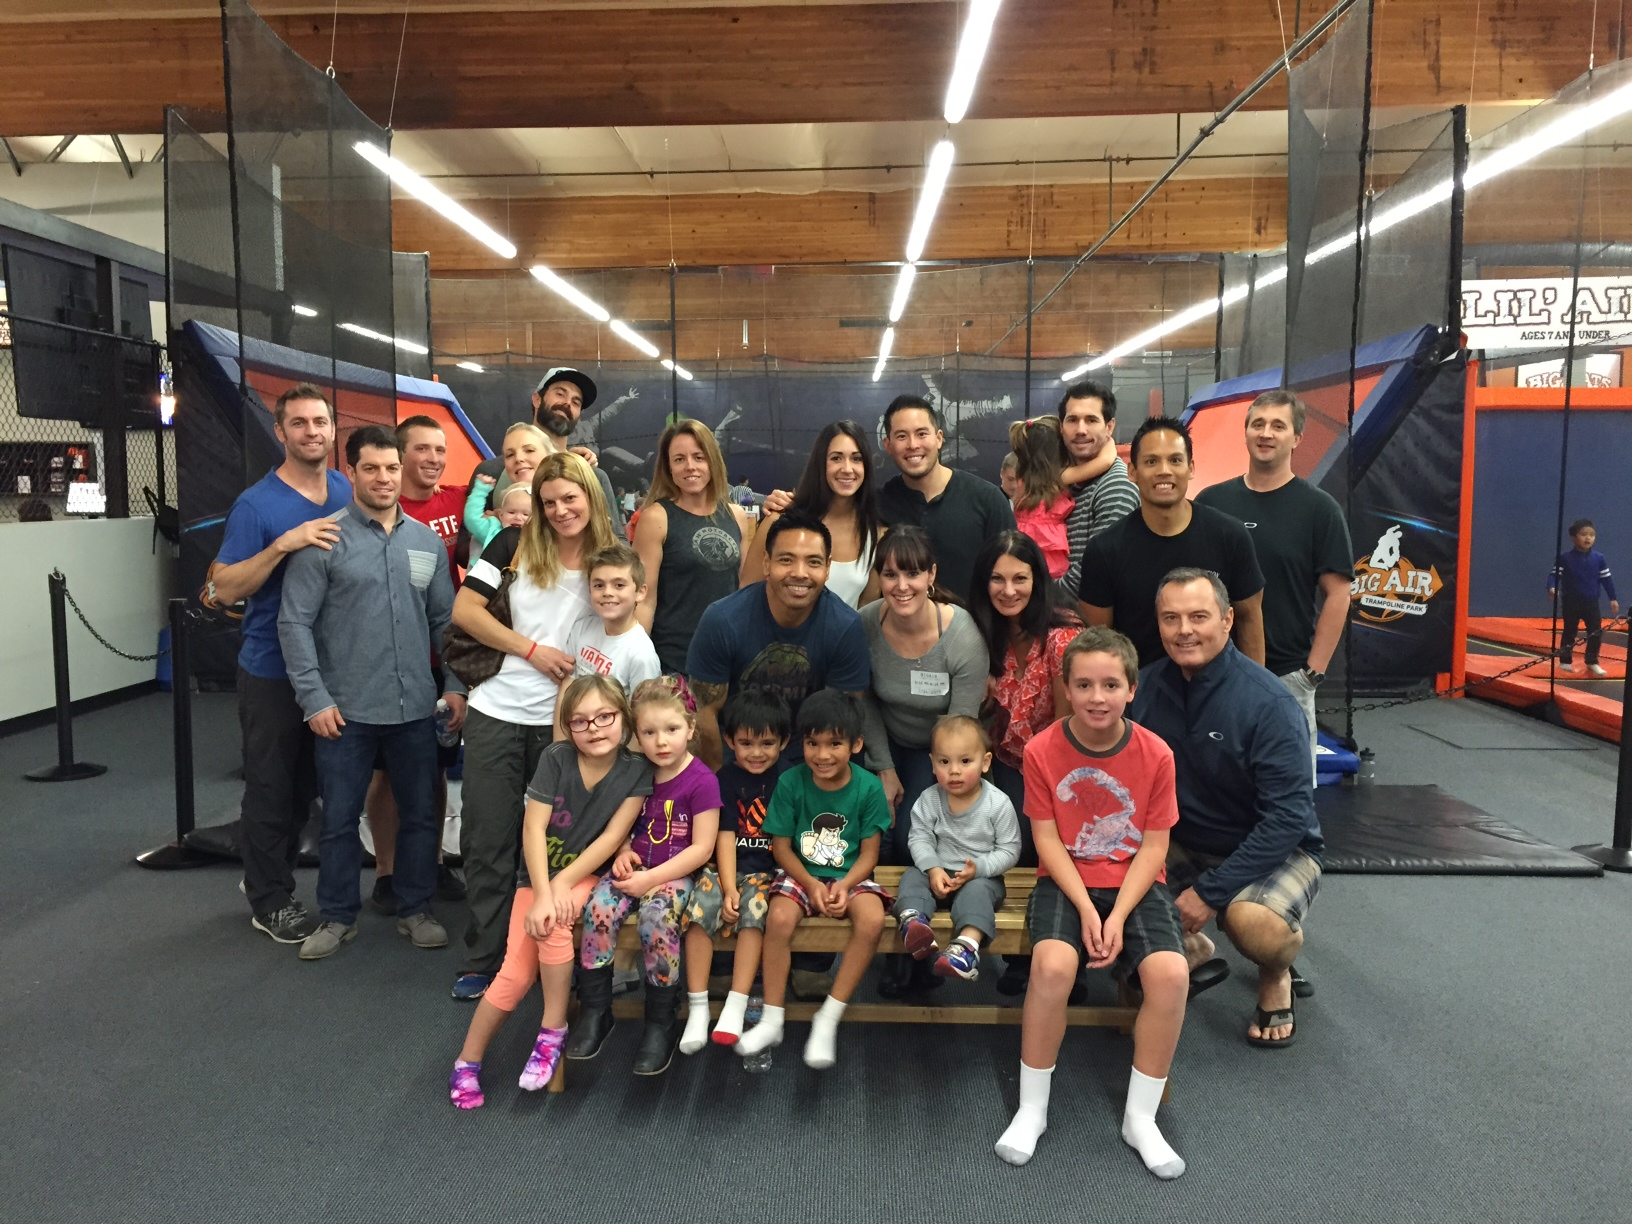 Family night at Big Air trampoline park